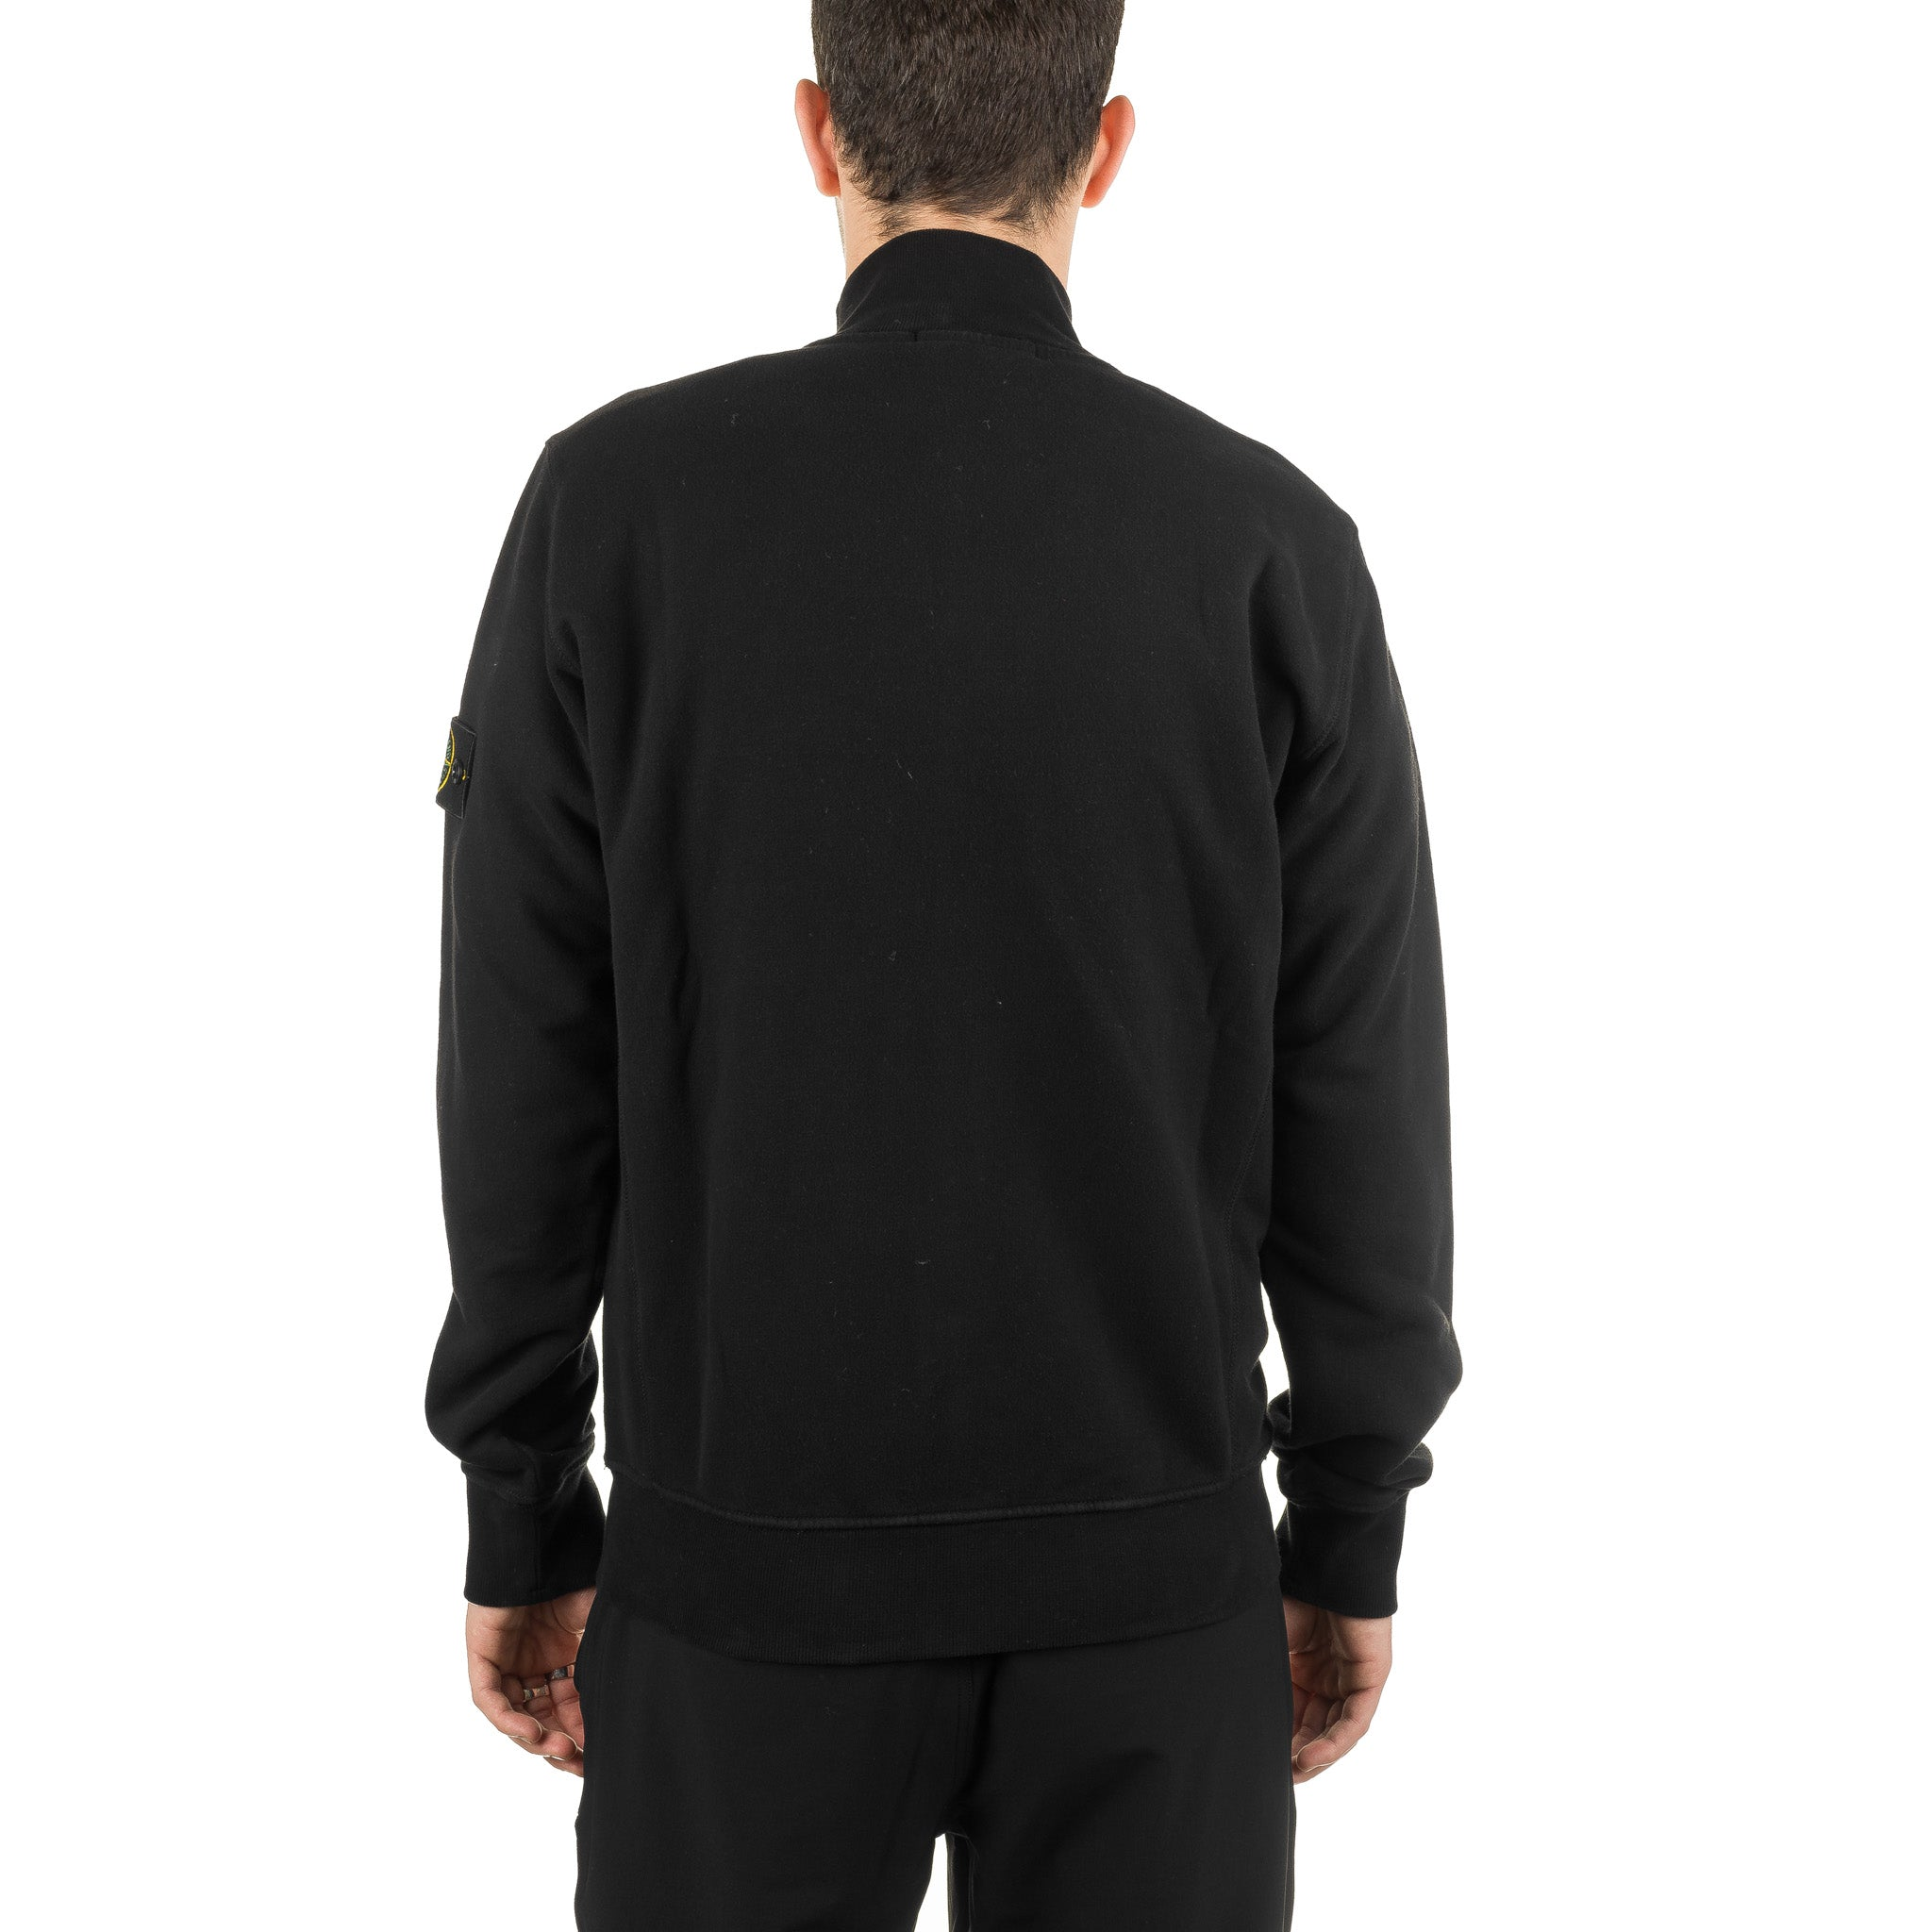 SI Garment Dyed Zip Sweater 711561620 Black